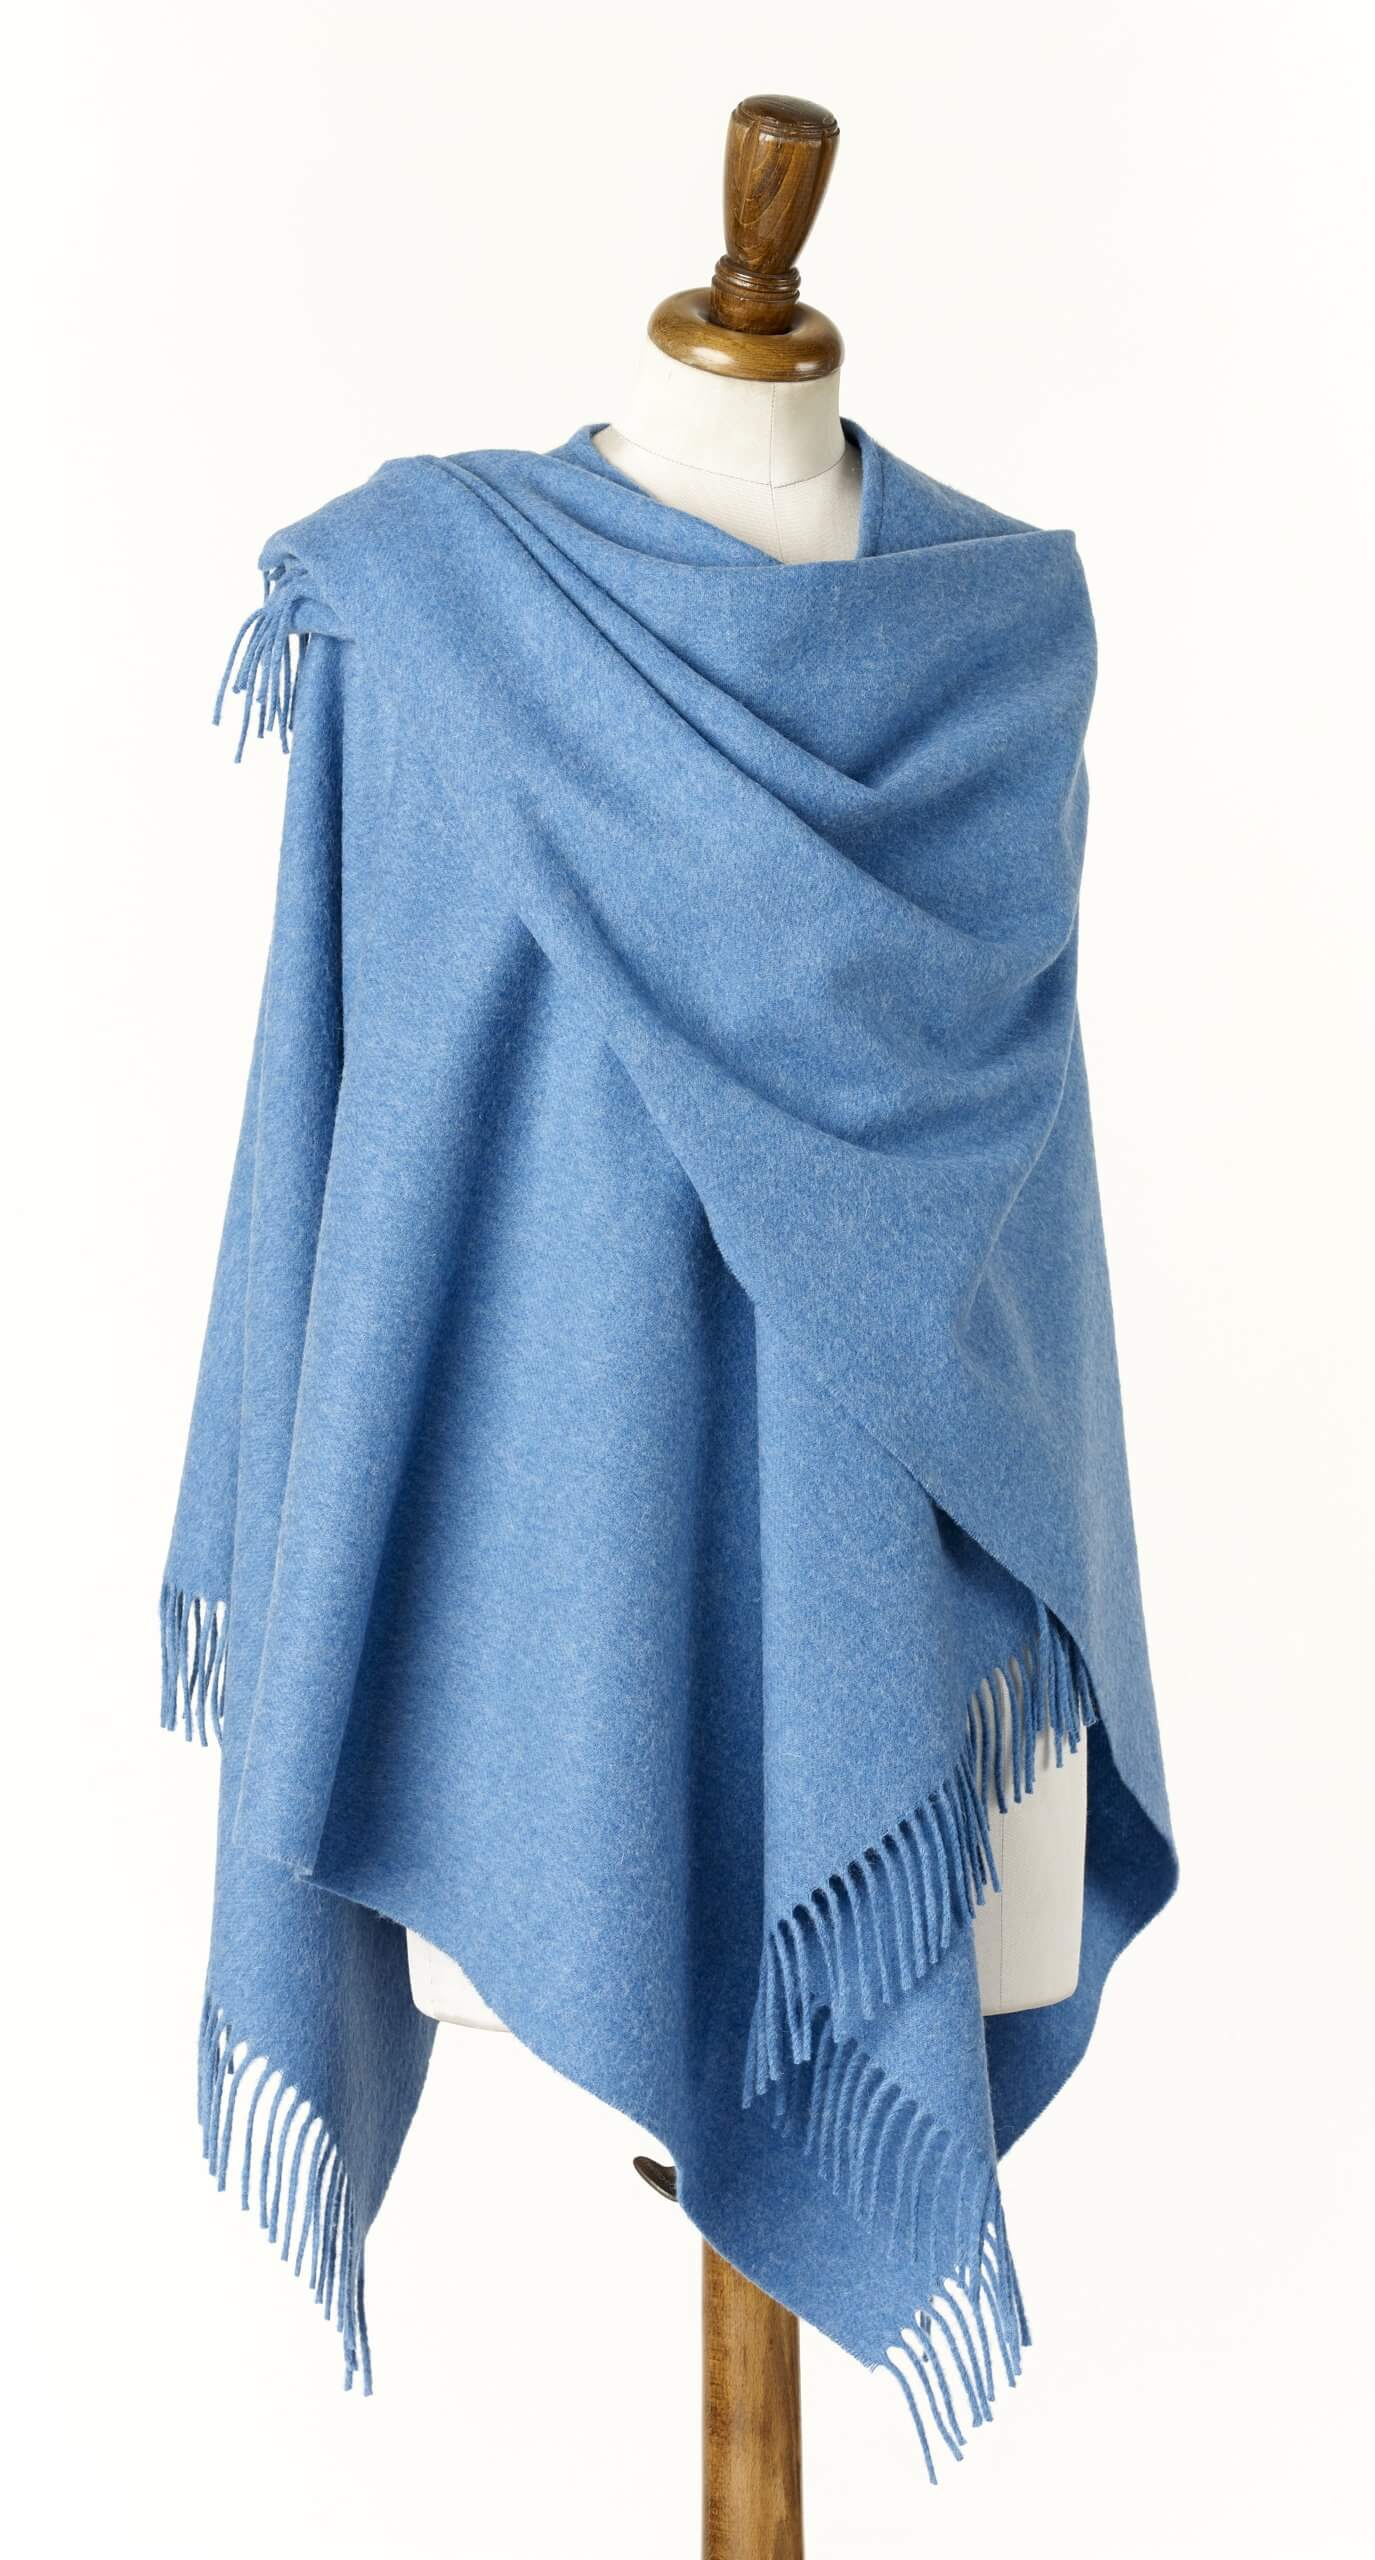 Ladies Ocean Blue Lambswool Shawl/Cape